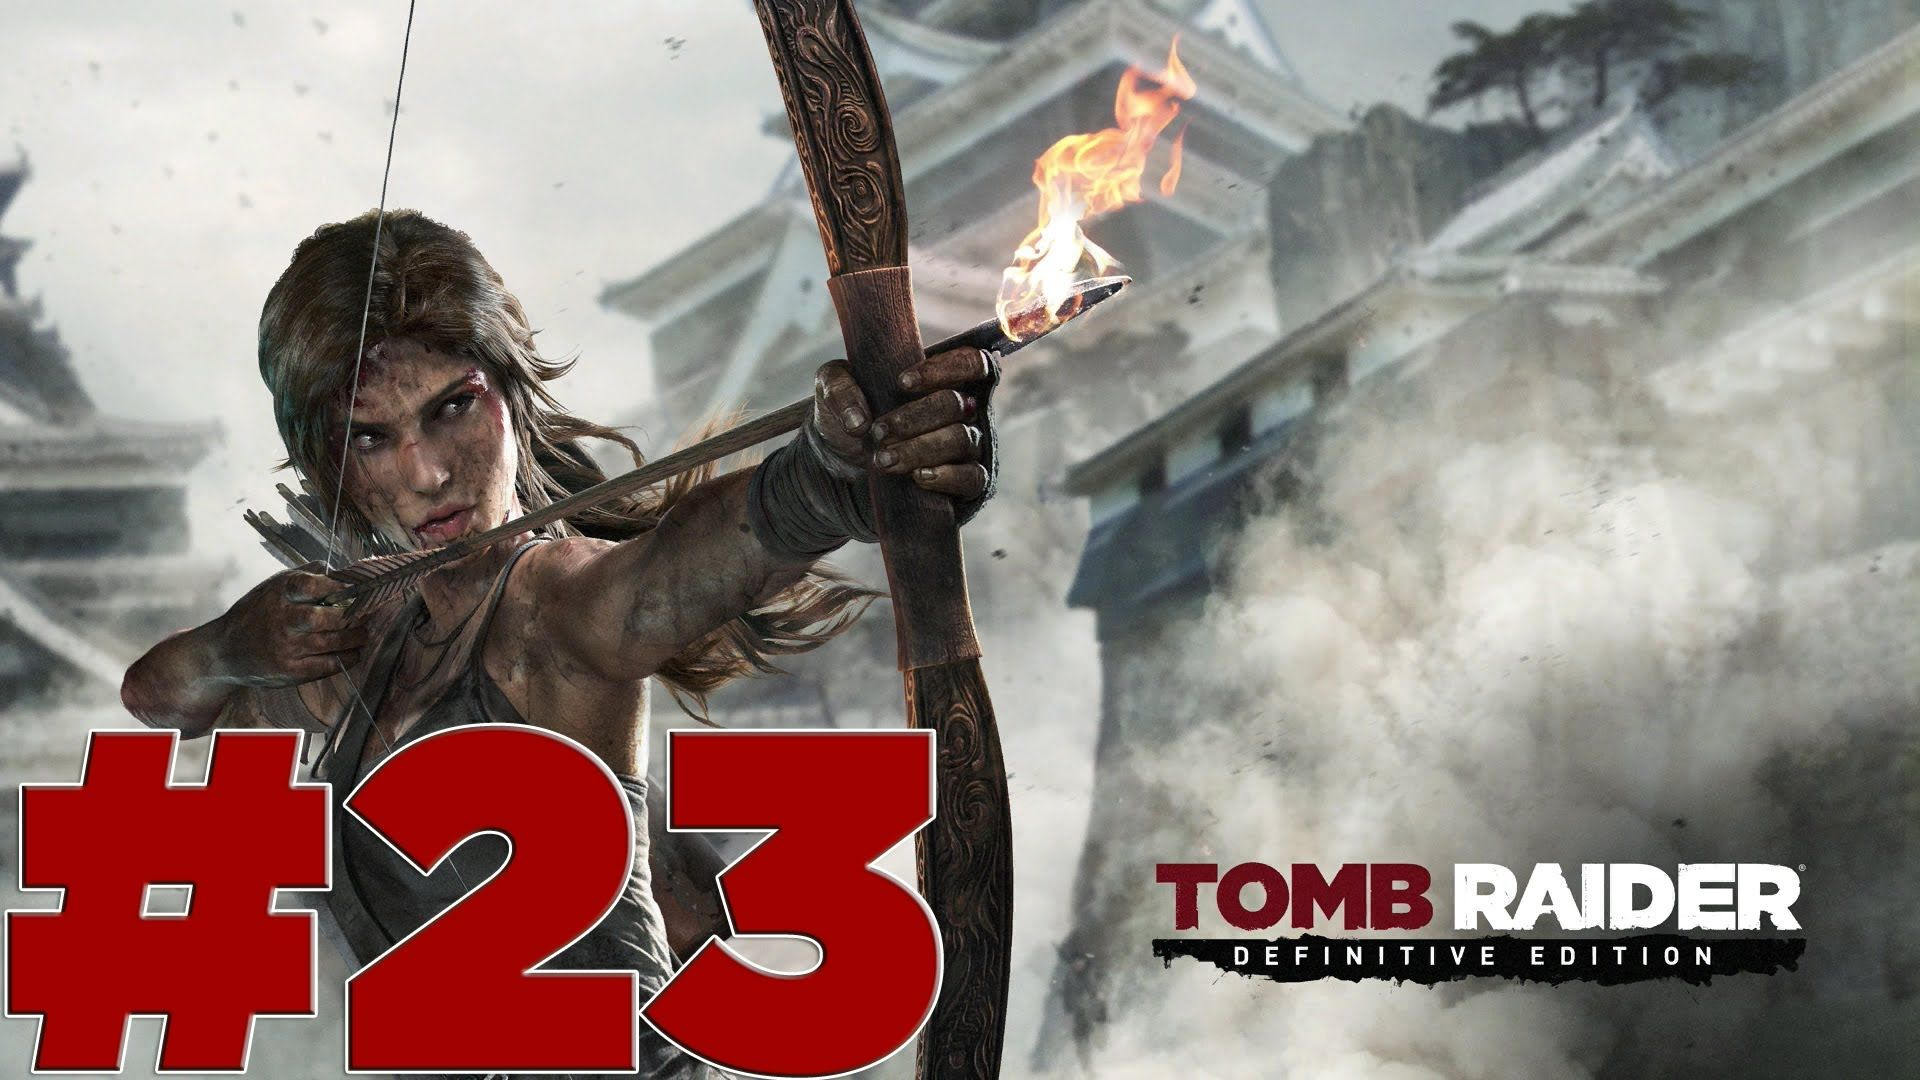 Tomb Raider Definitive Edition Ps4 Part 23 Let S Play Walkthrough Tomb Raider Tomb Raider Xbox 360 Rise Of The Tomb